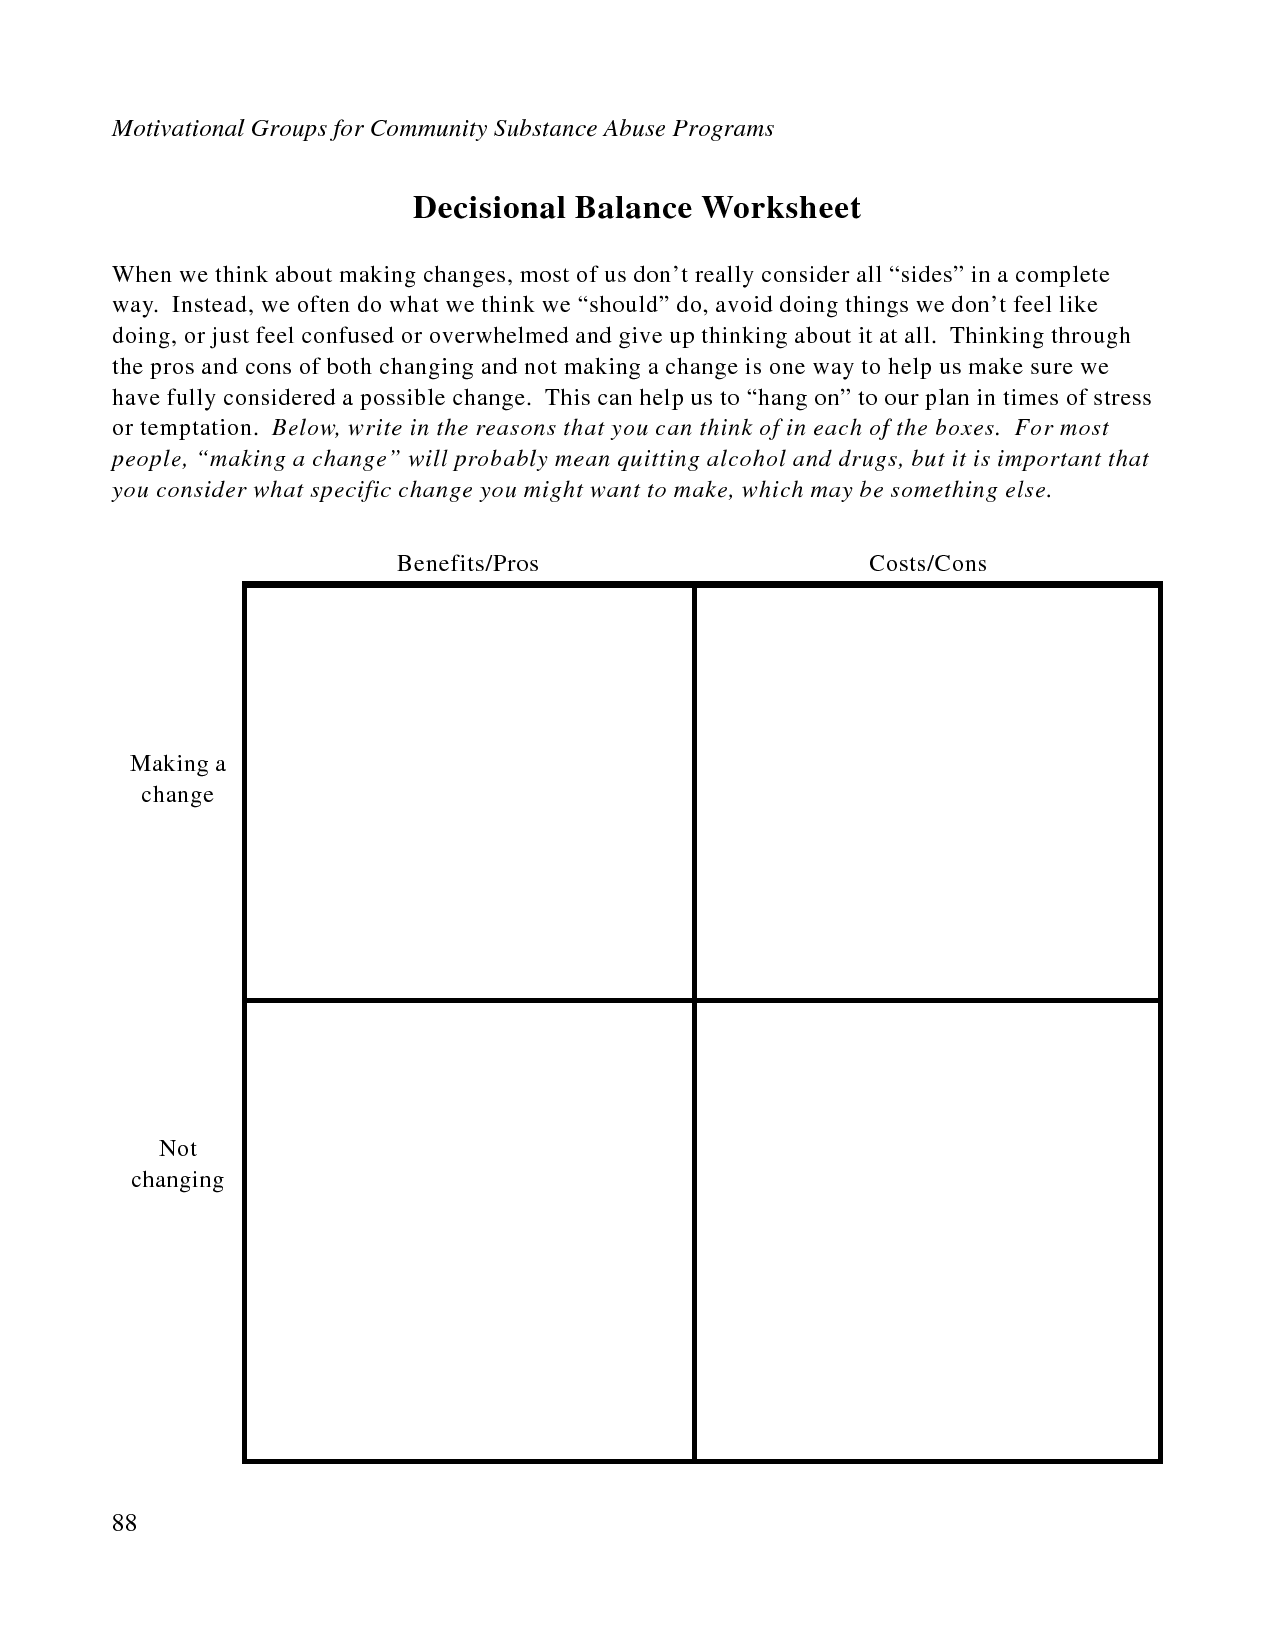 Decisional Balance Worksheet